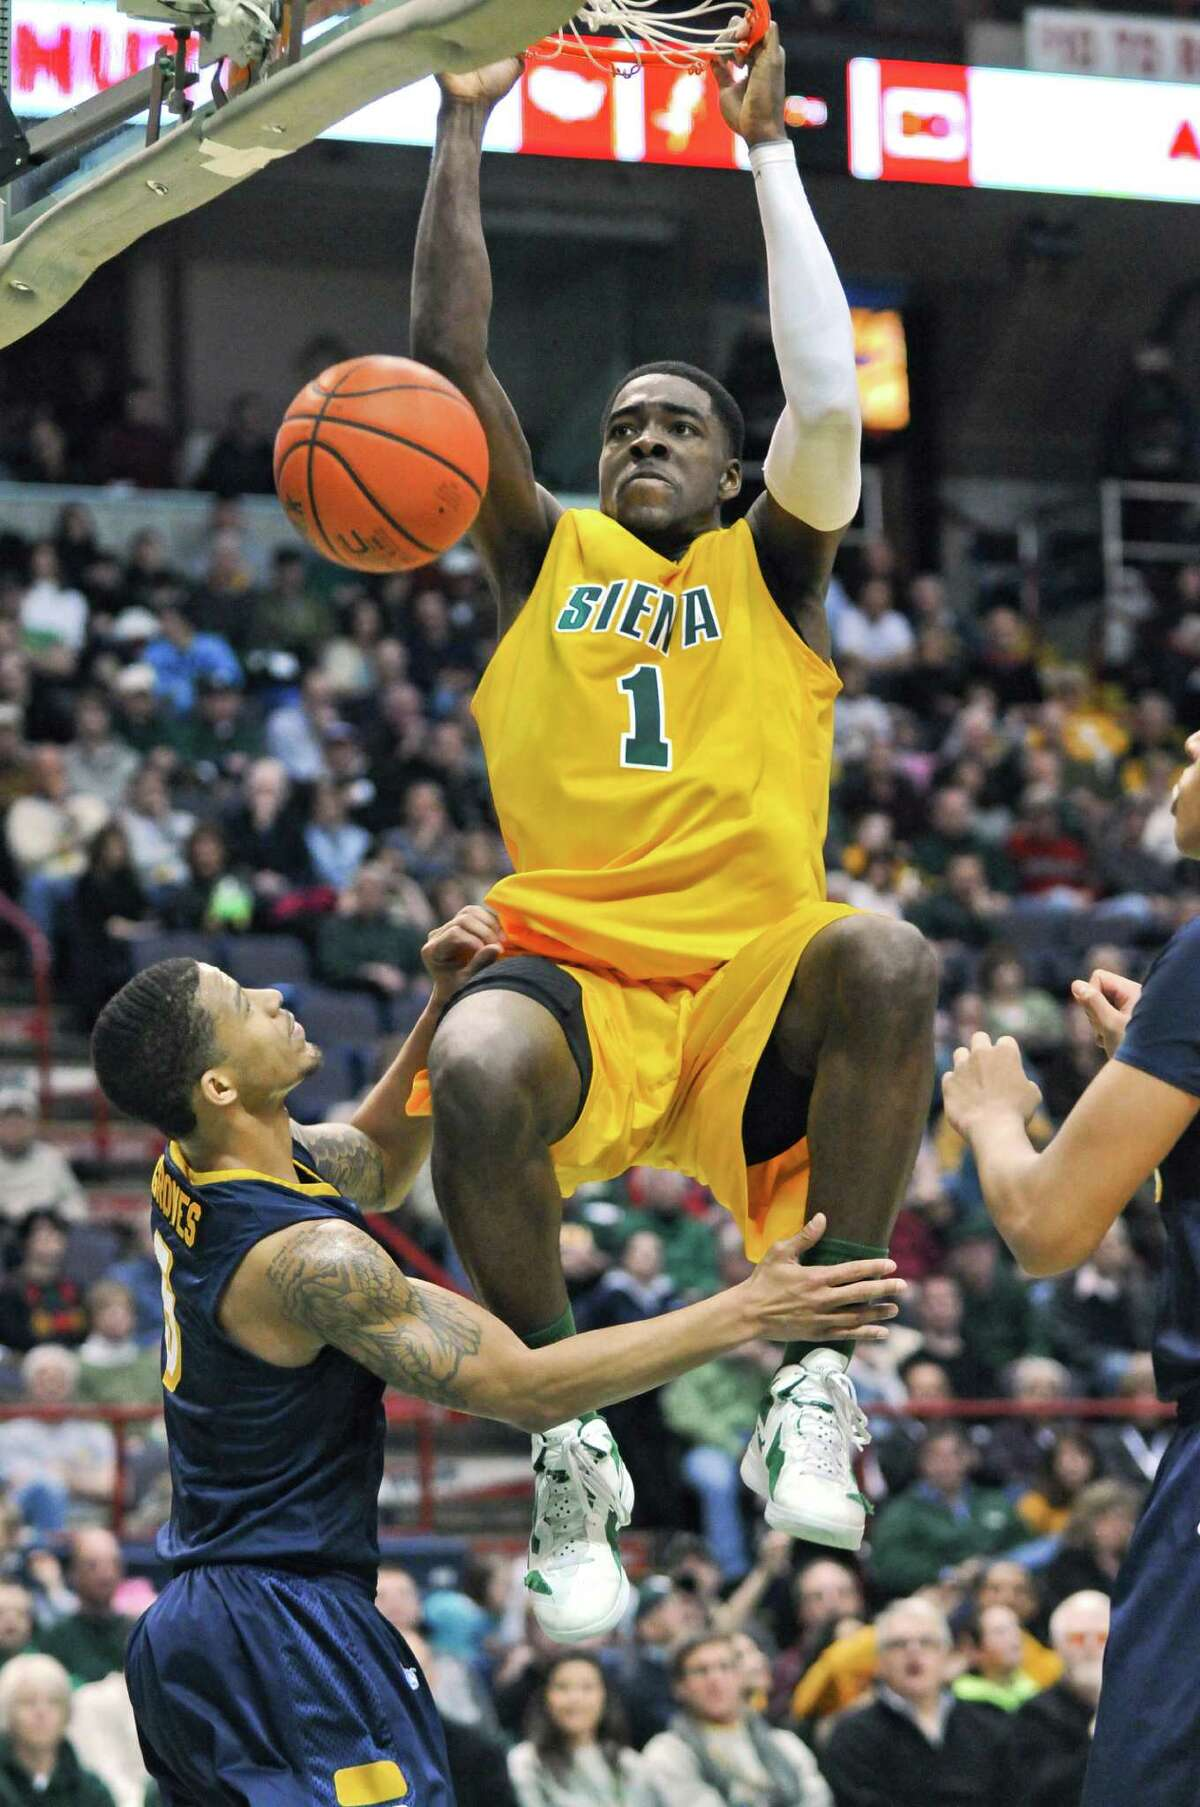 Siena's OD Anosike jams home a rebound over Canisius Reggie Groves during the second half of Siena's 86-75 victory at the Times Union Center on Sunday Feb. 26, 2012 in Albany, N.Y. (Philip Kamrass / Times Union )